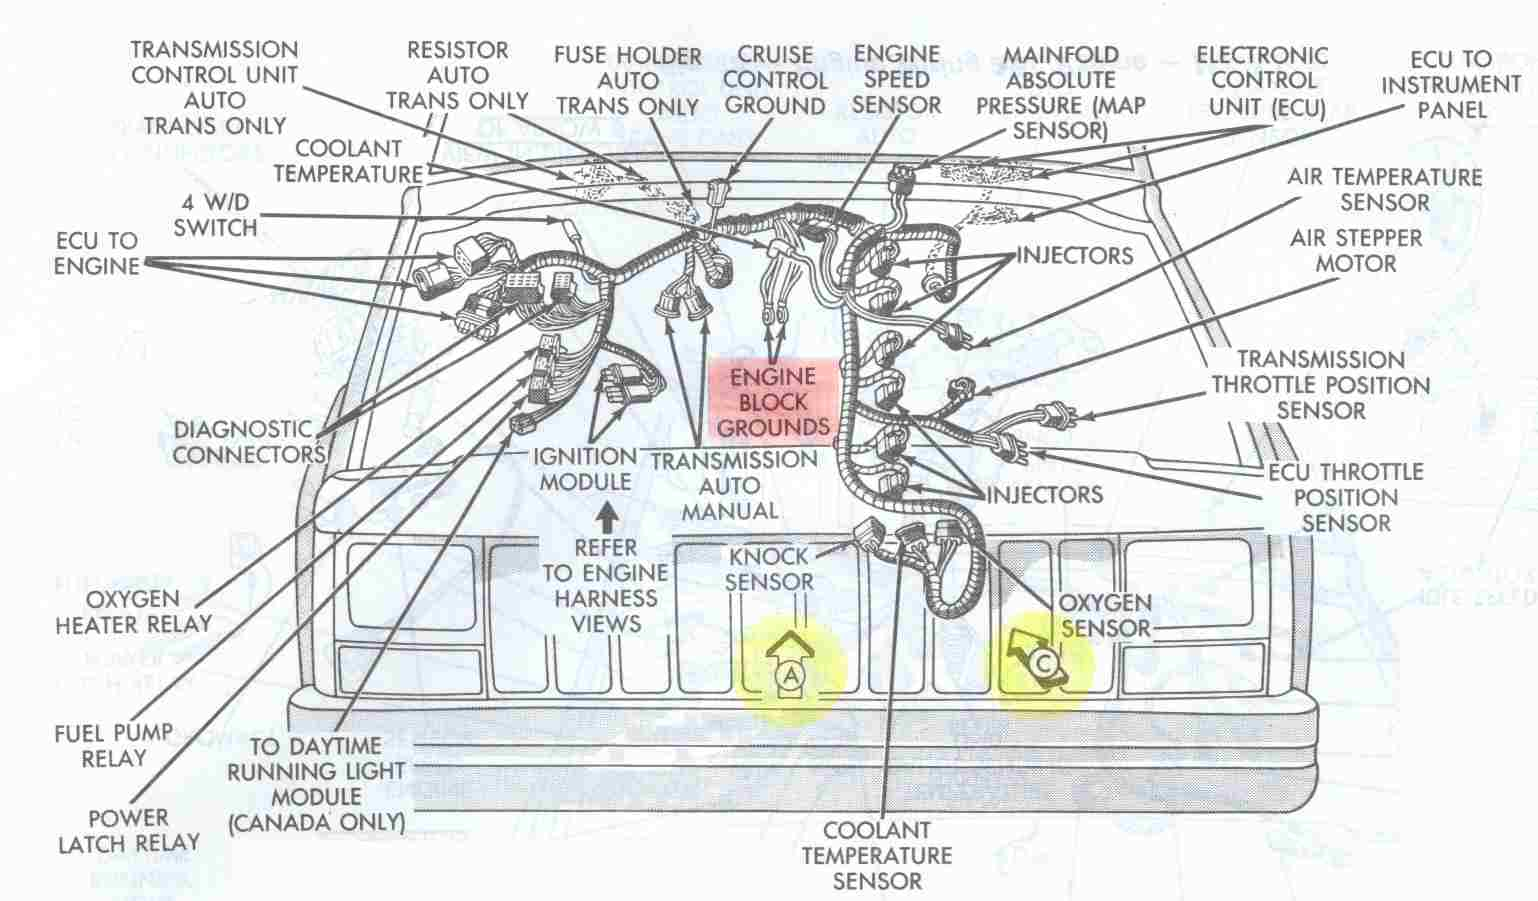 Electrical_Engine_Ground_Points_Overview jeep cherokee electrical diagnosing erratic behavior of engine 1998 jeep cherokee wiring harness at gsmportal.co